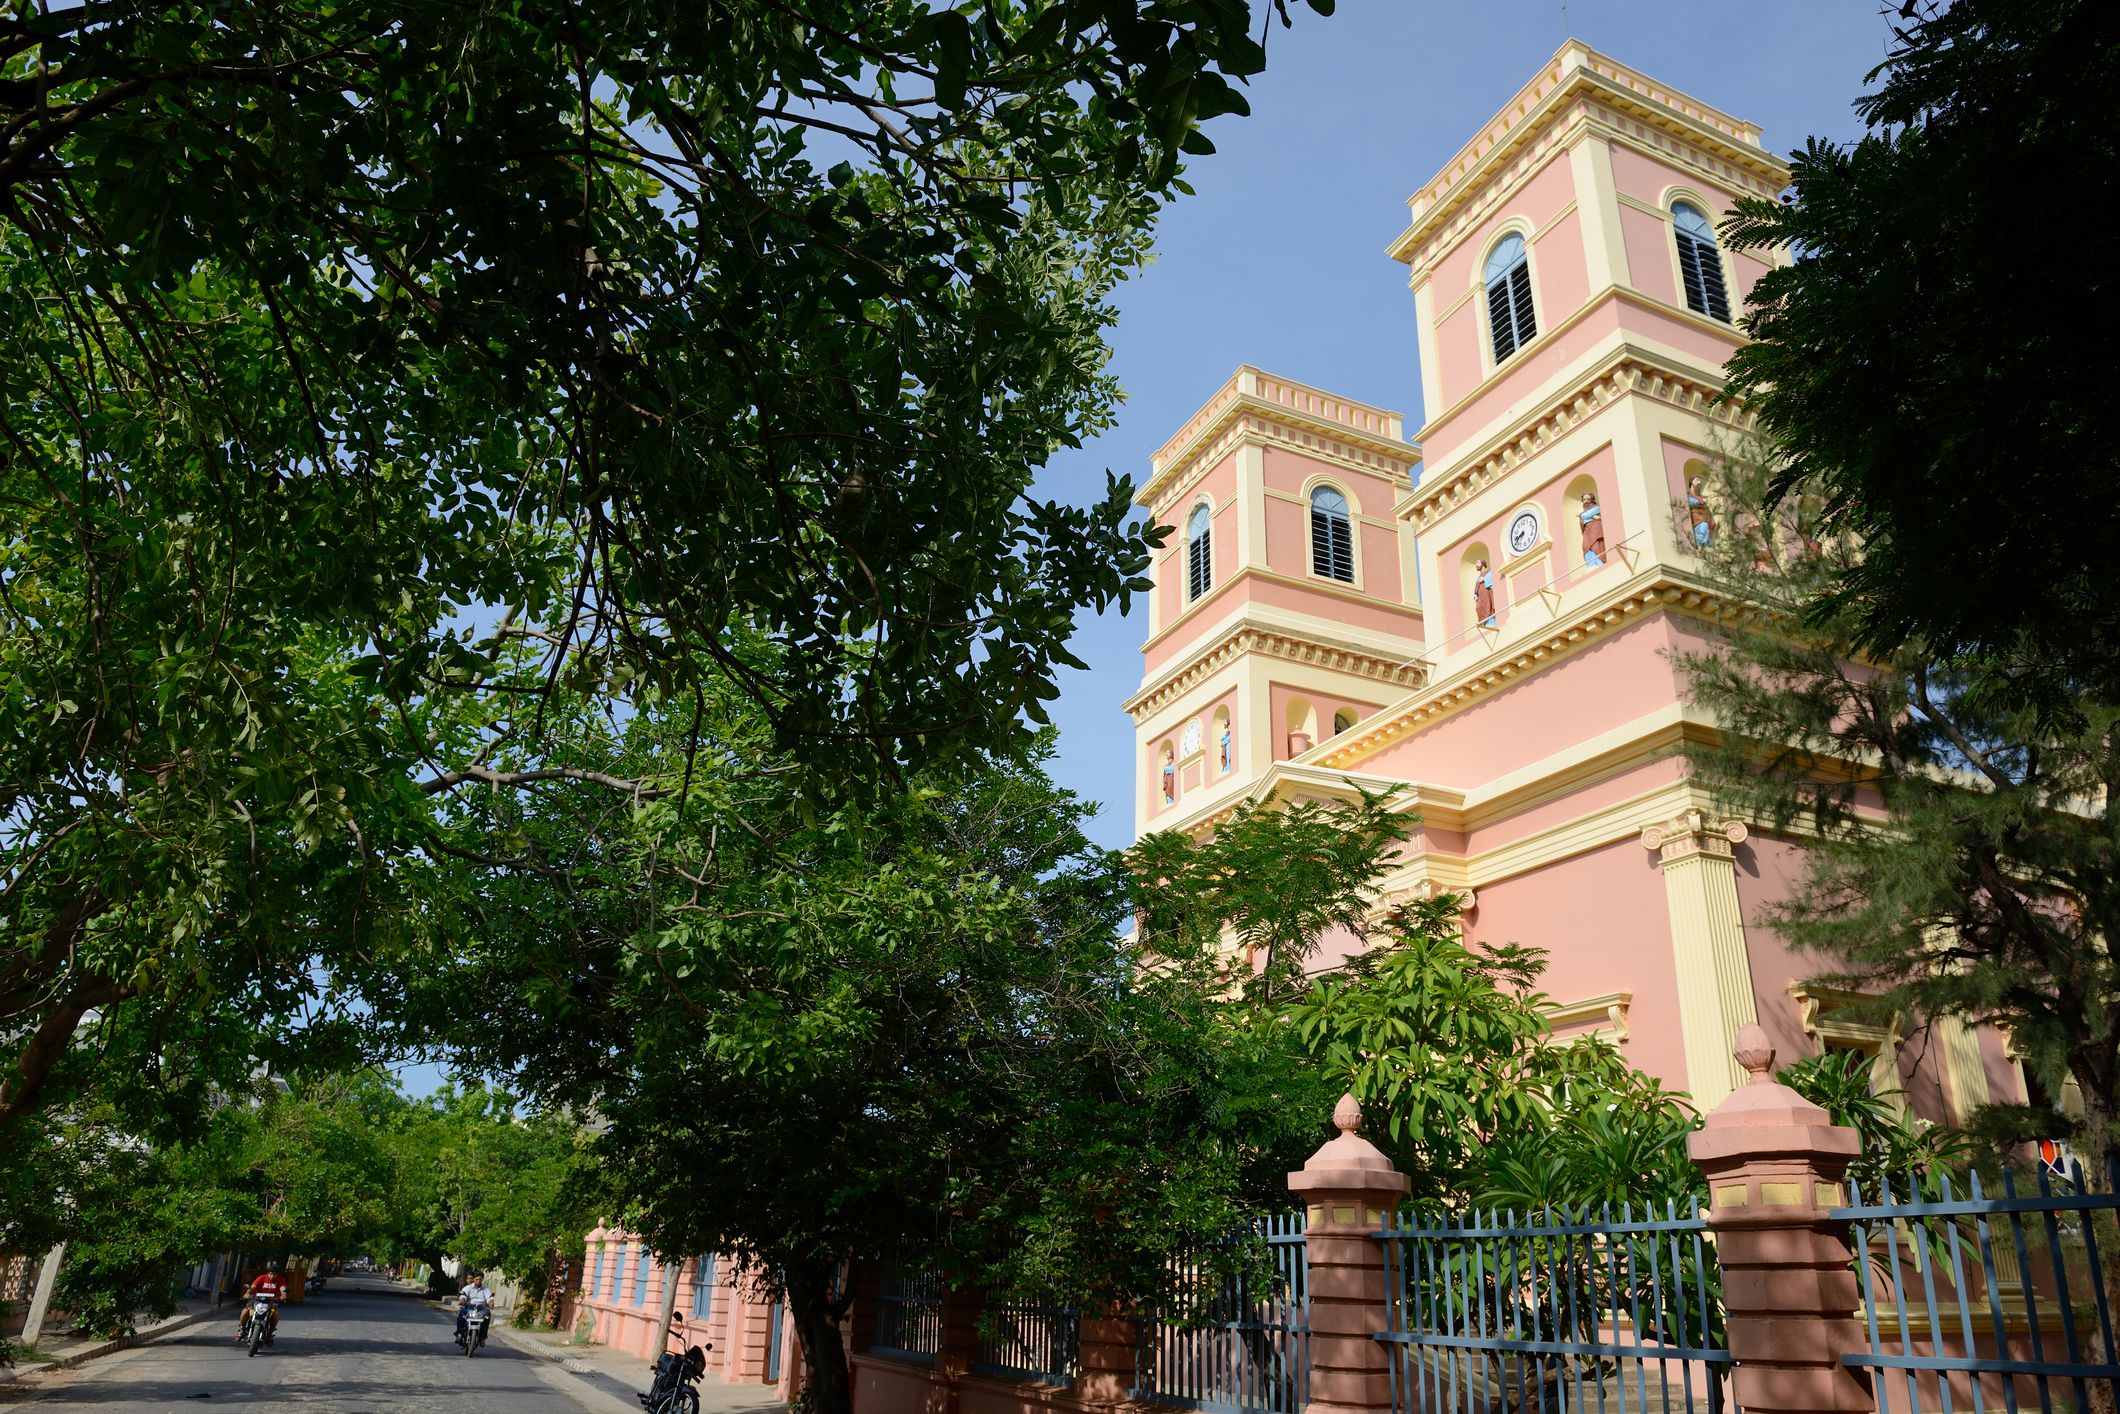 Eglise de Notre Dame des Anges (The Church of Our Lady of Angels) in Pondicherry